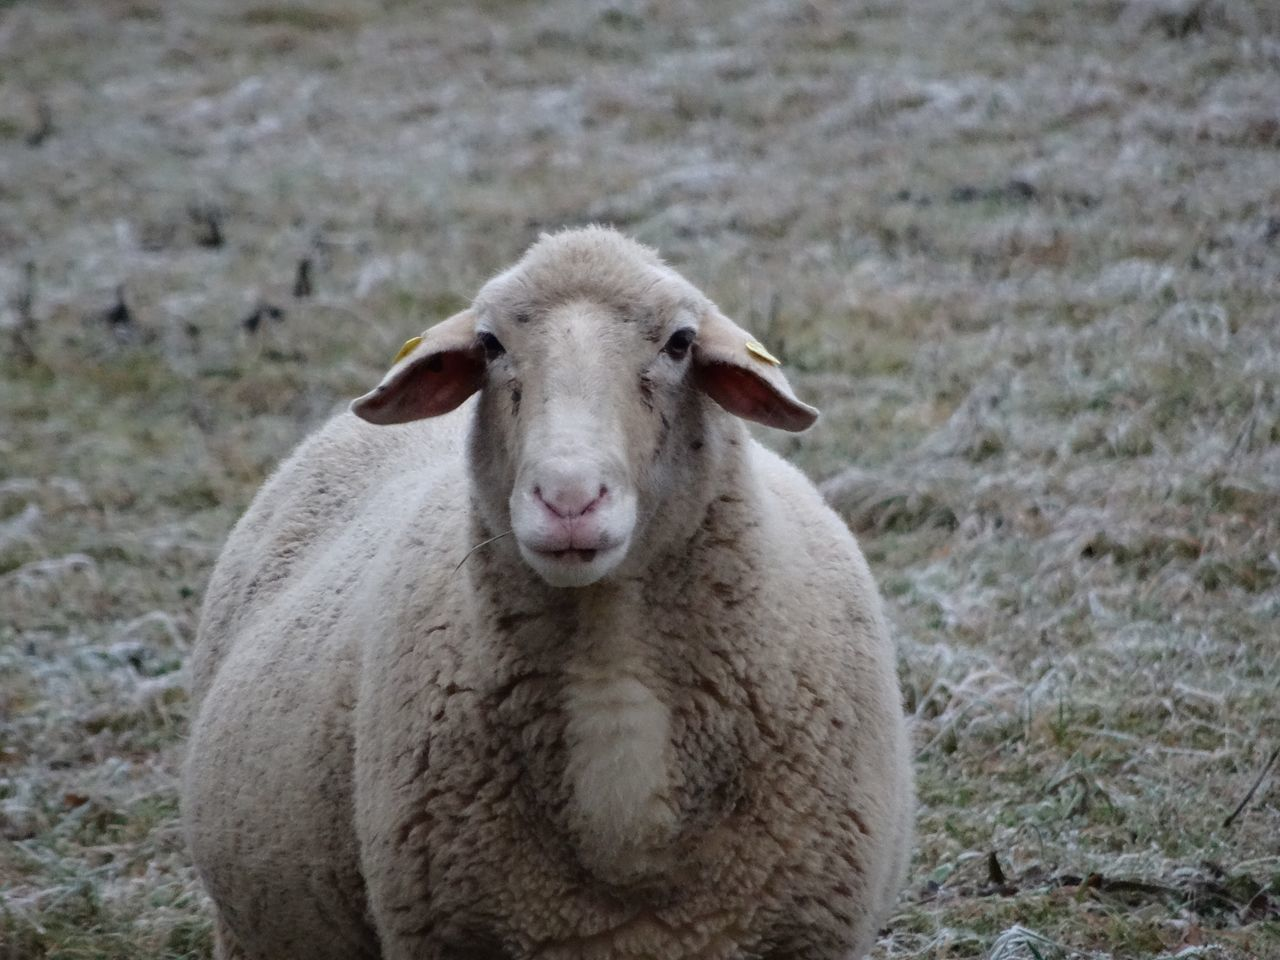 Livestock Animal Themes Looking At Camera Sheep Portrait Domestic Animals One Animal Mammal Field No People Close-up Day Rural Outdoors Nature White Frost Cold Temperature Snow